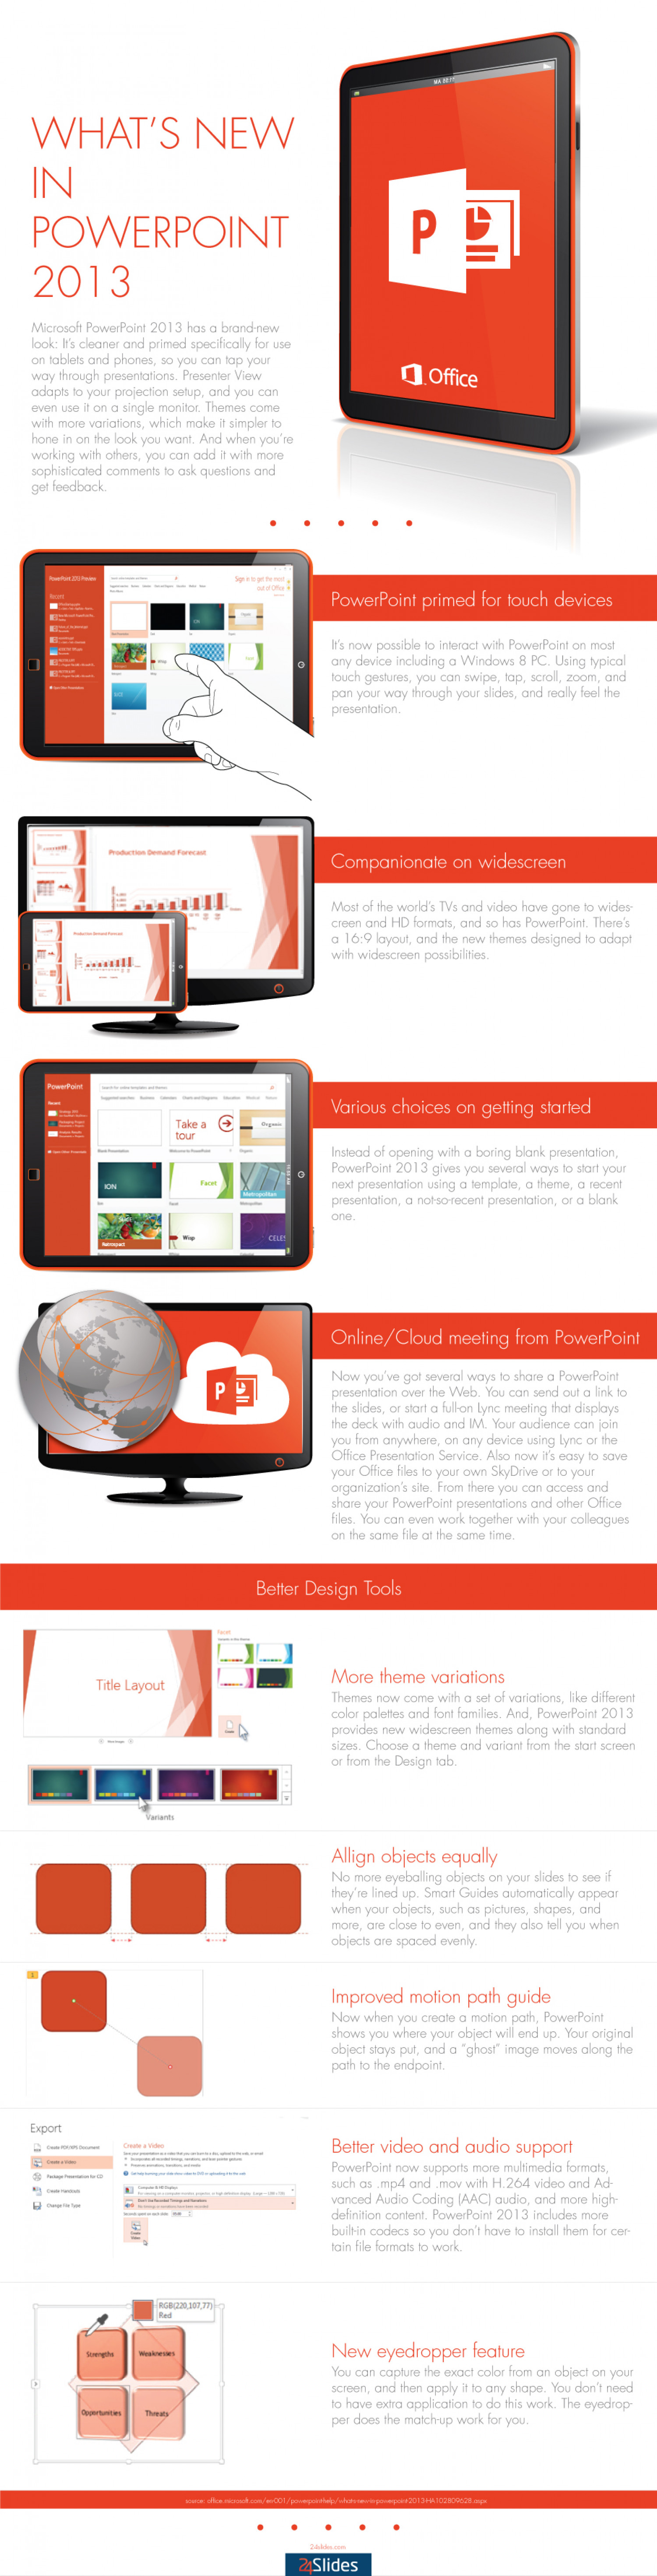 What's New in PowerPoint 2013 Infographic